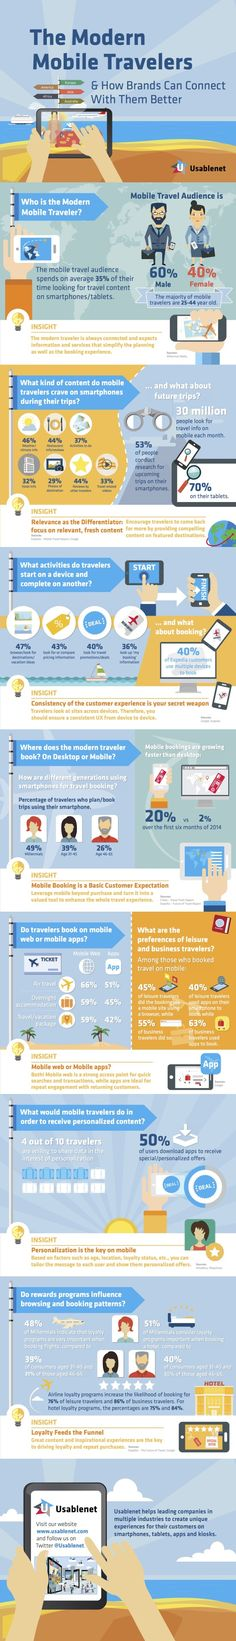 How brands can connect with modern mobile travelers [INFOGRAPHIC] - What kind of travel content are mobile travelers looking for when they use their devices? Marketing Digital, Mobile Marketing, Online Marketing, Hotel App, Future Of Marketing, Digital Strategy, Travel And Tourism, Travel Tips, Le Web